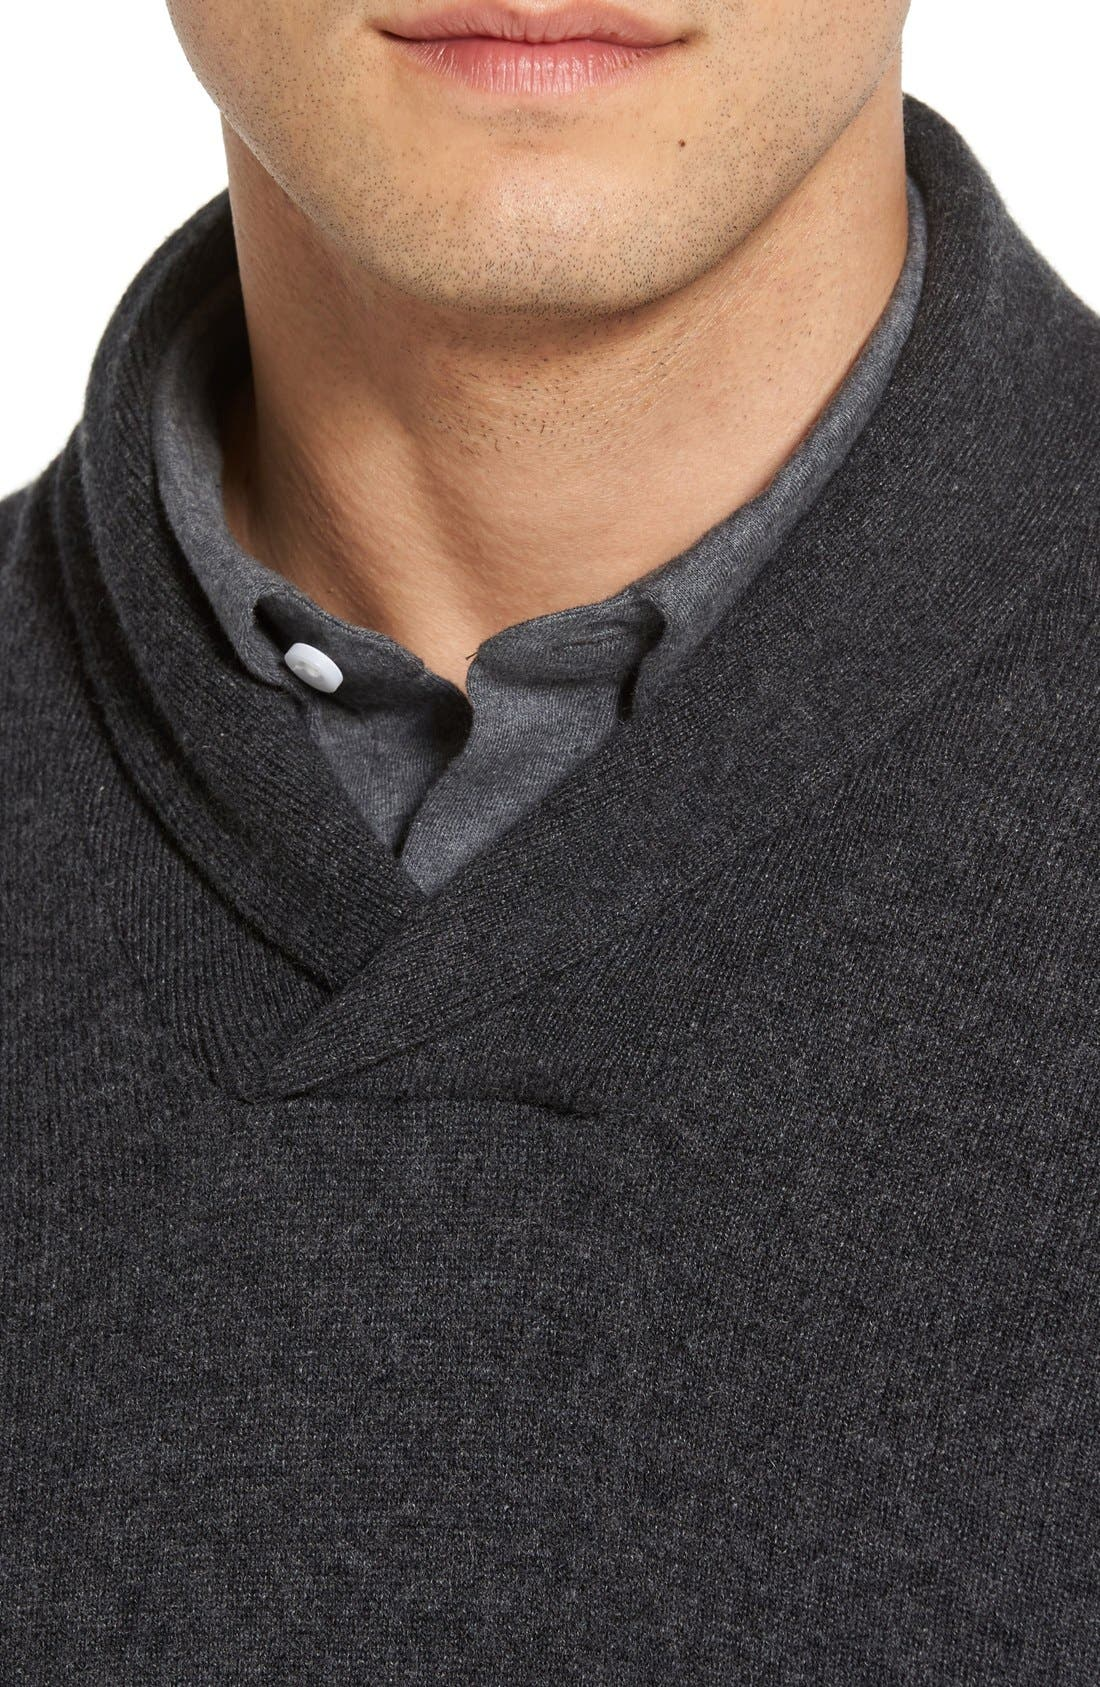 Shawl Collar Cashmere Pullover,                             Alternate thumbnail 3, color,                             GREY DARK CHARCOAL HEATHER